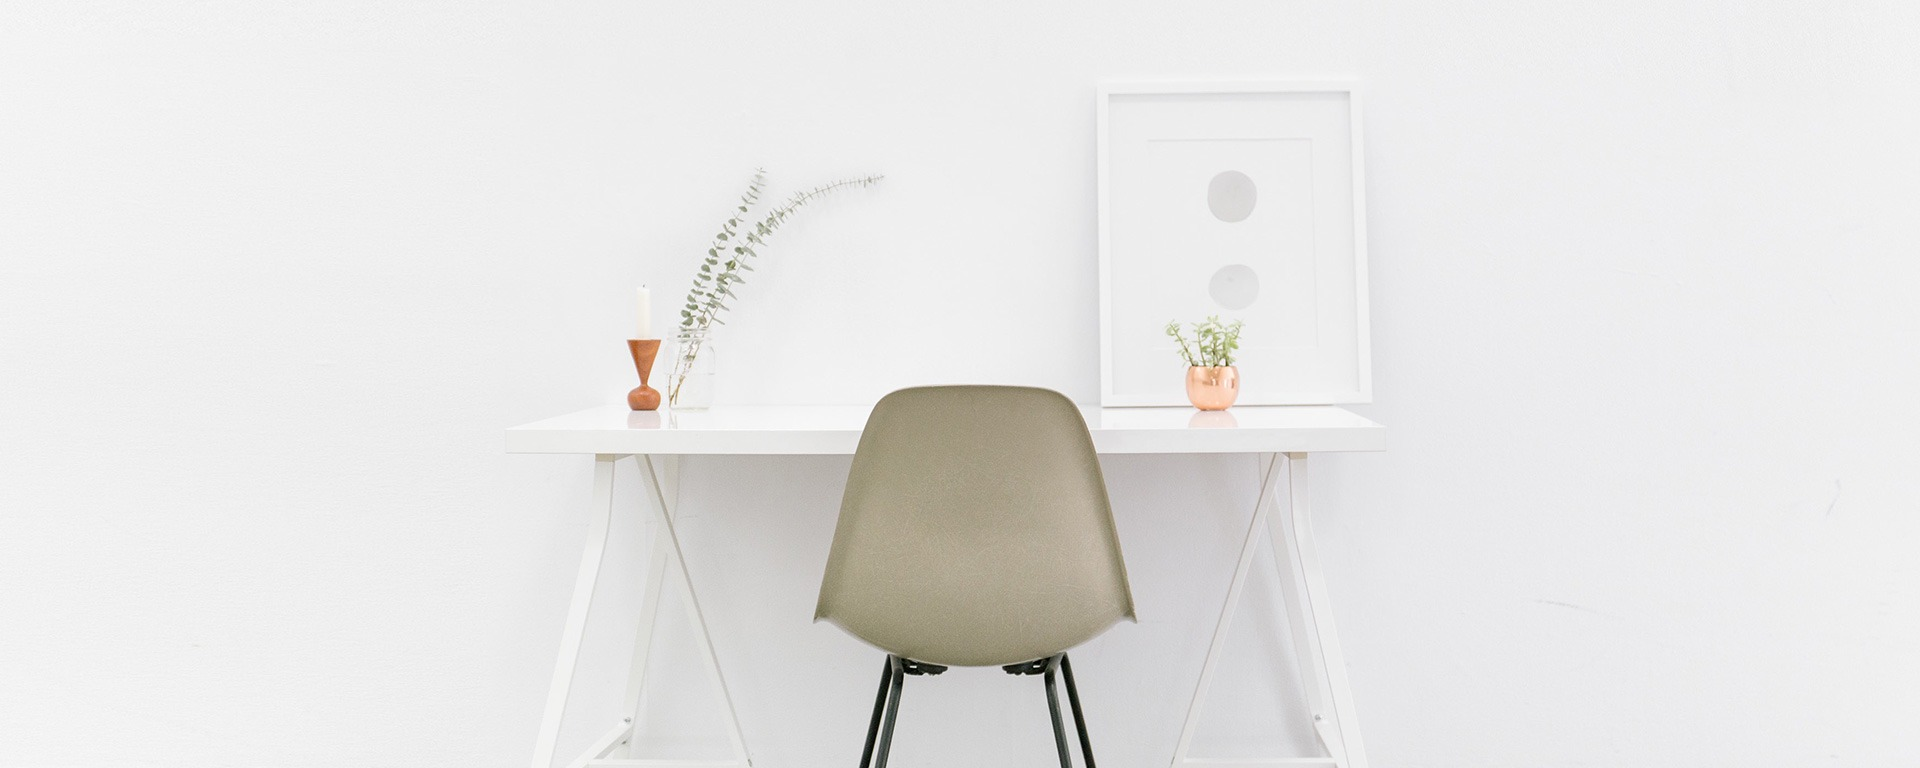 Chic chair and desk against a white wall.